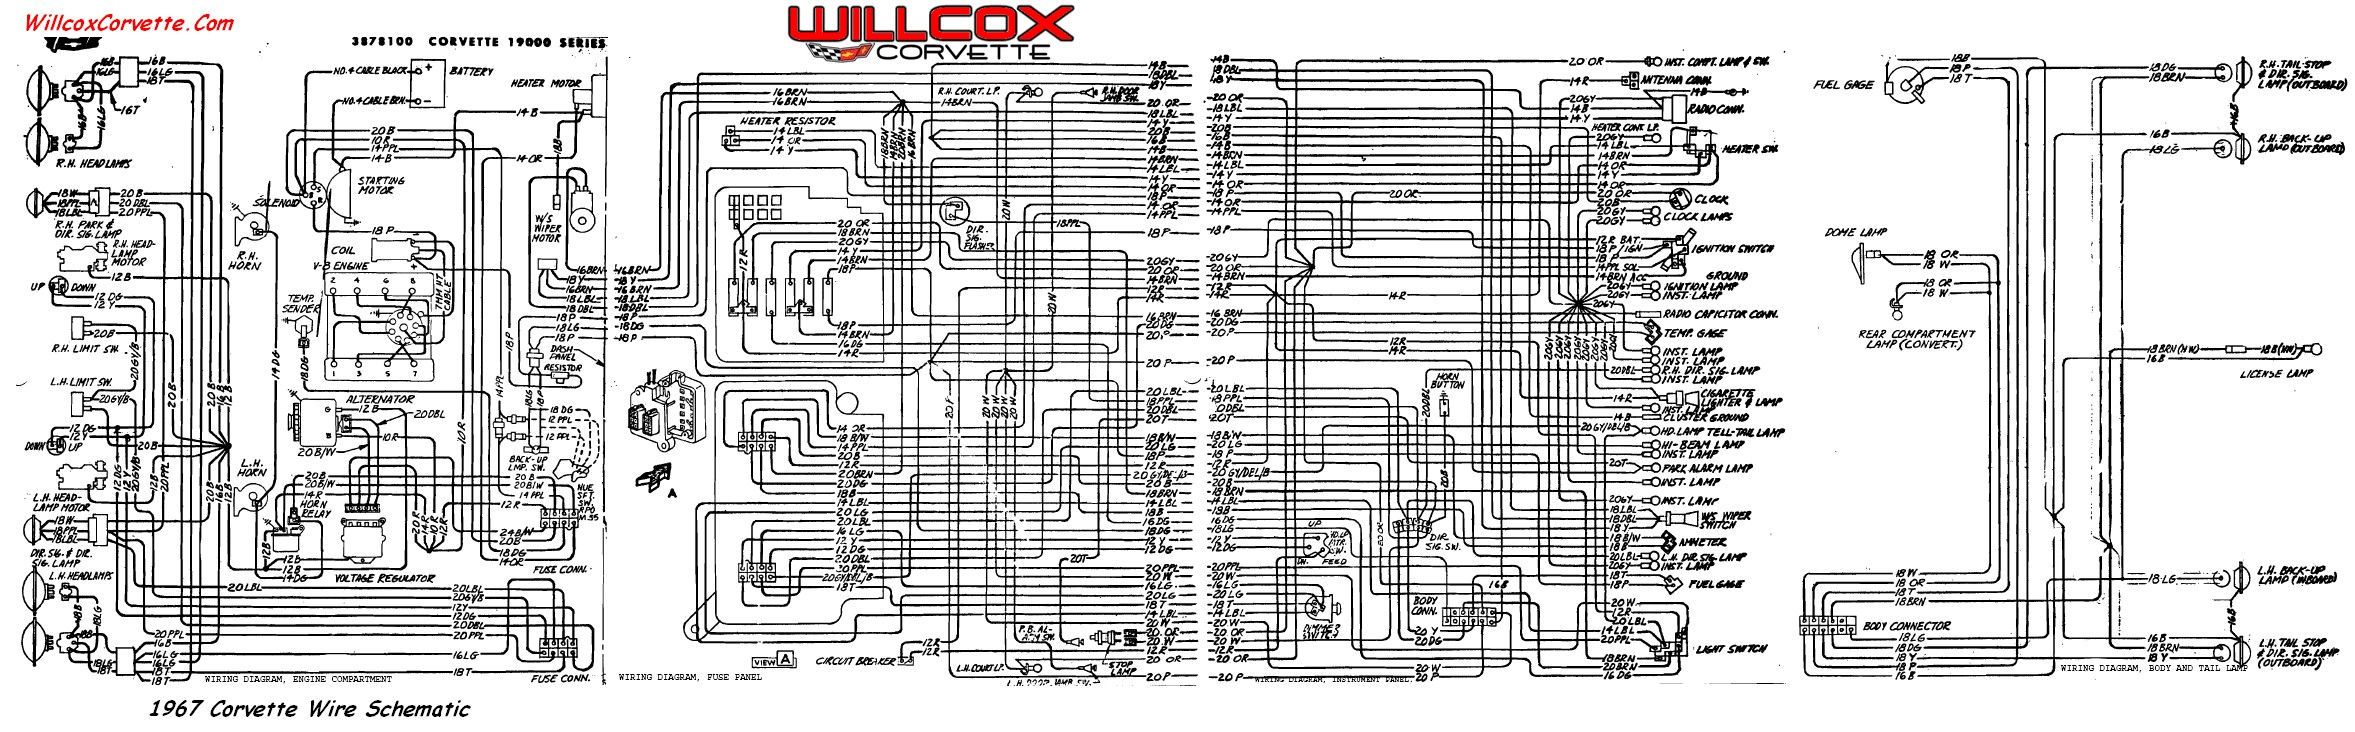 1979 corvette wiring diagram awesome wiring diagram image rh mainetreasurechest com 1998 Corvette Wiring Diagram Electrical Wiring Diagram for 1977 Corvette